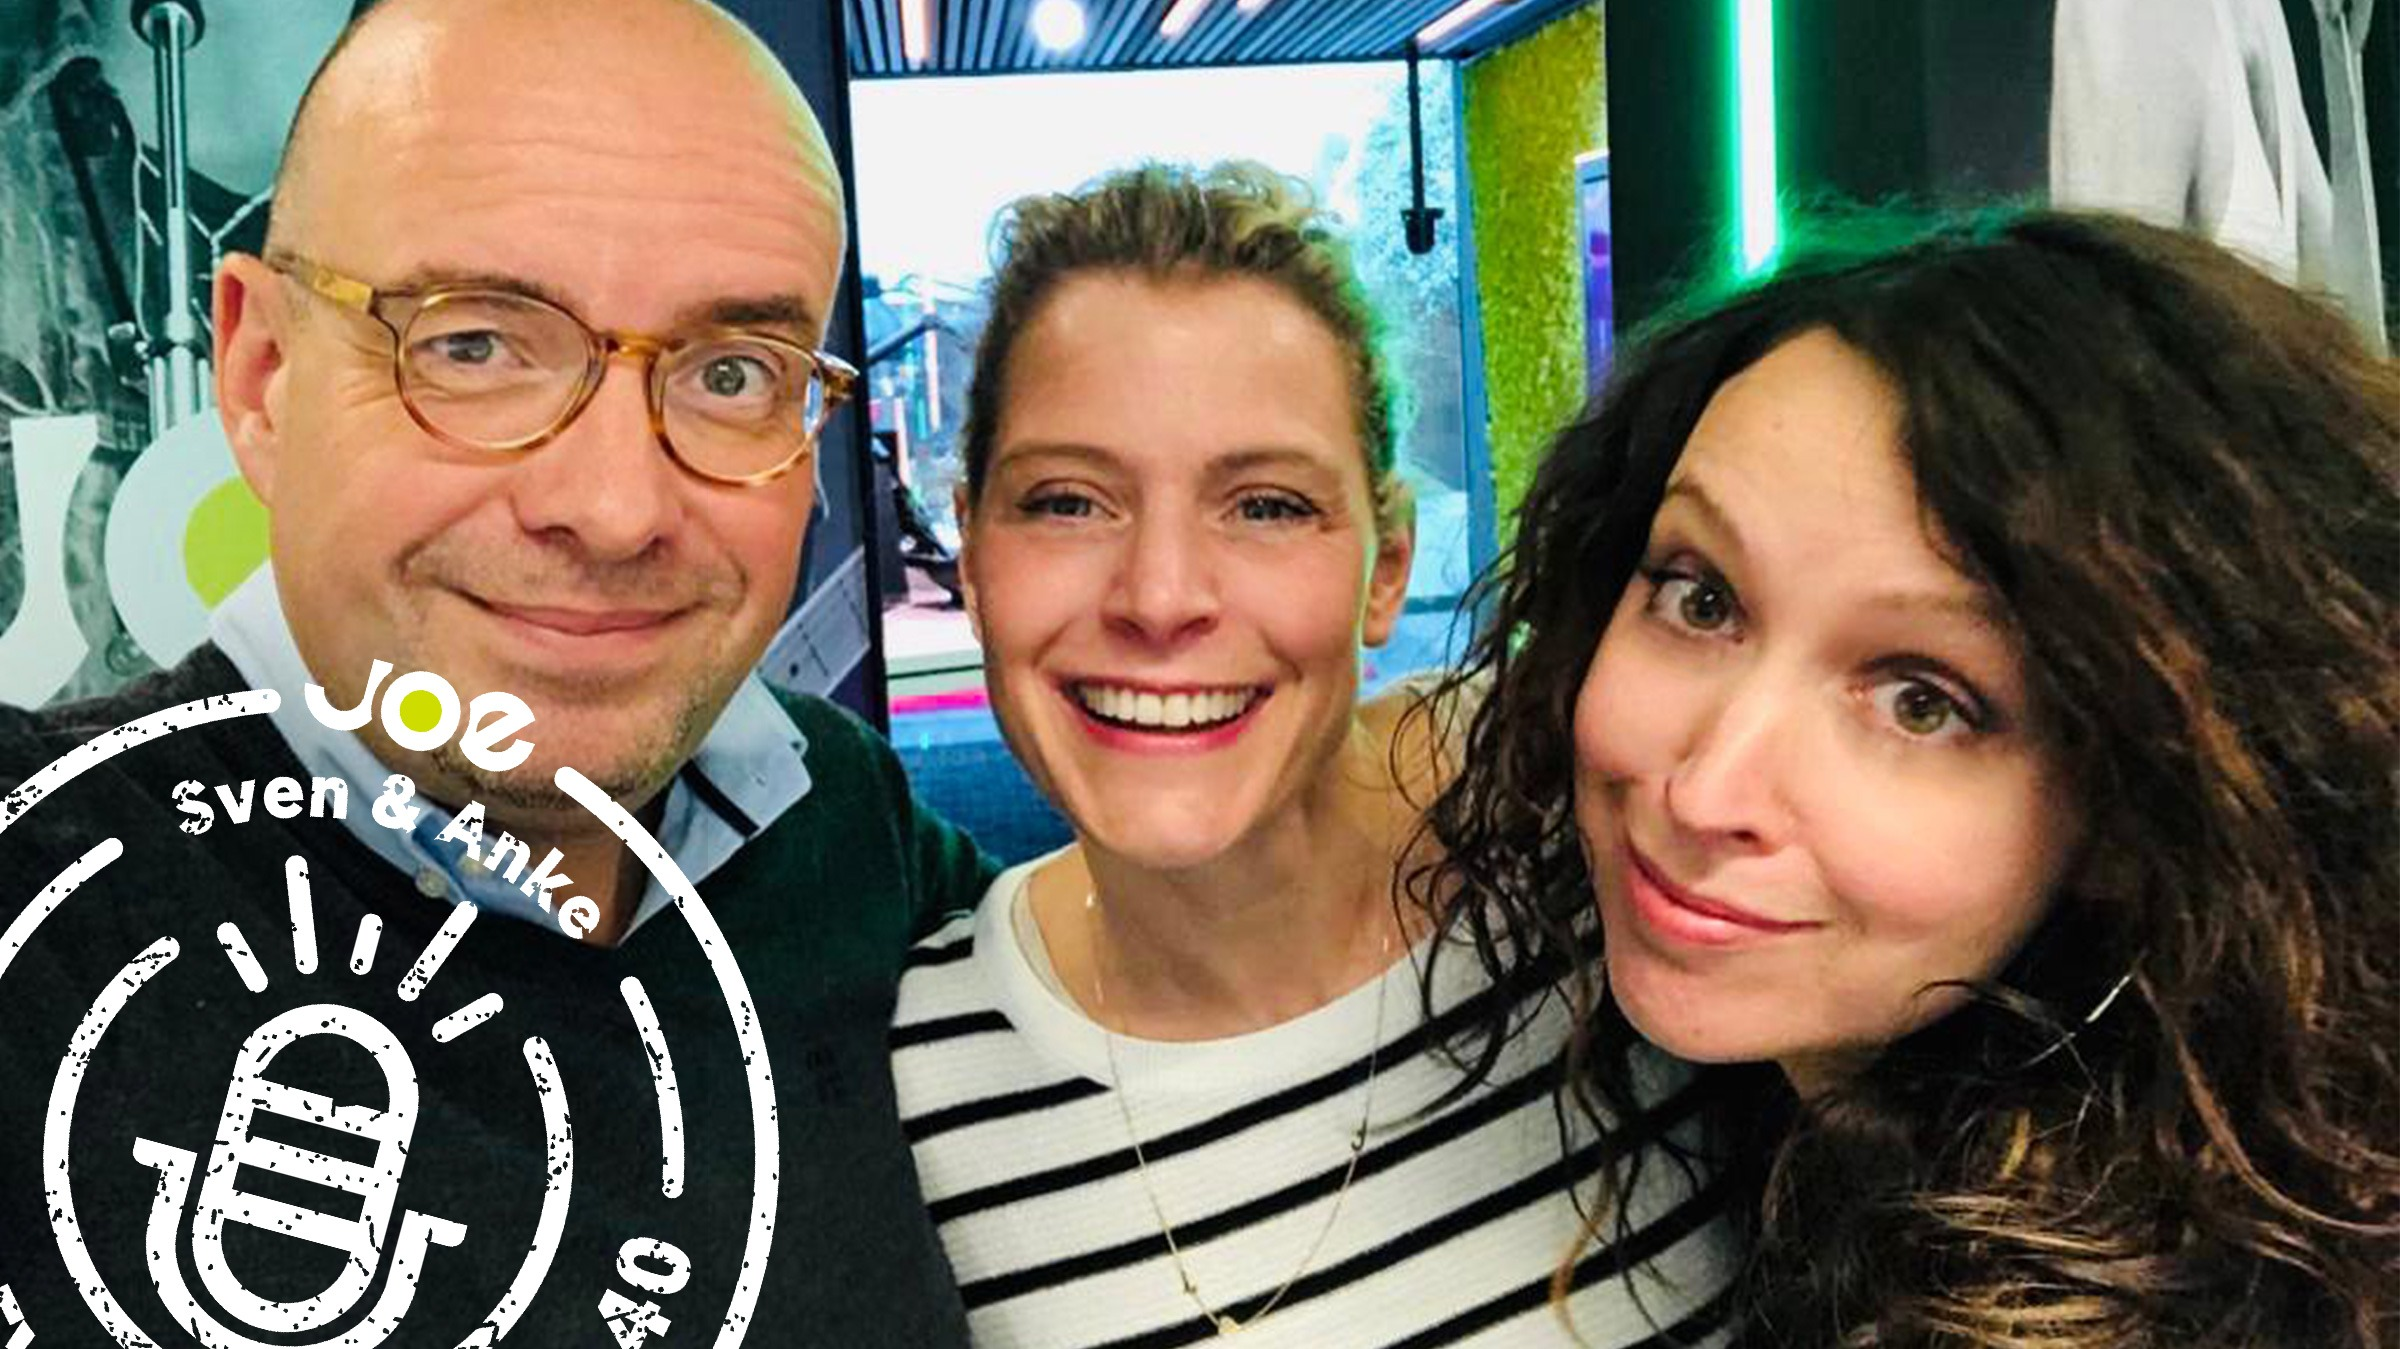 Joe sven anke podcast stempel dina